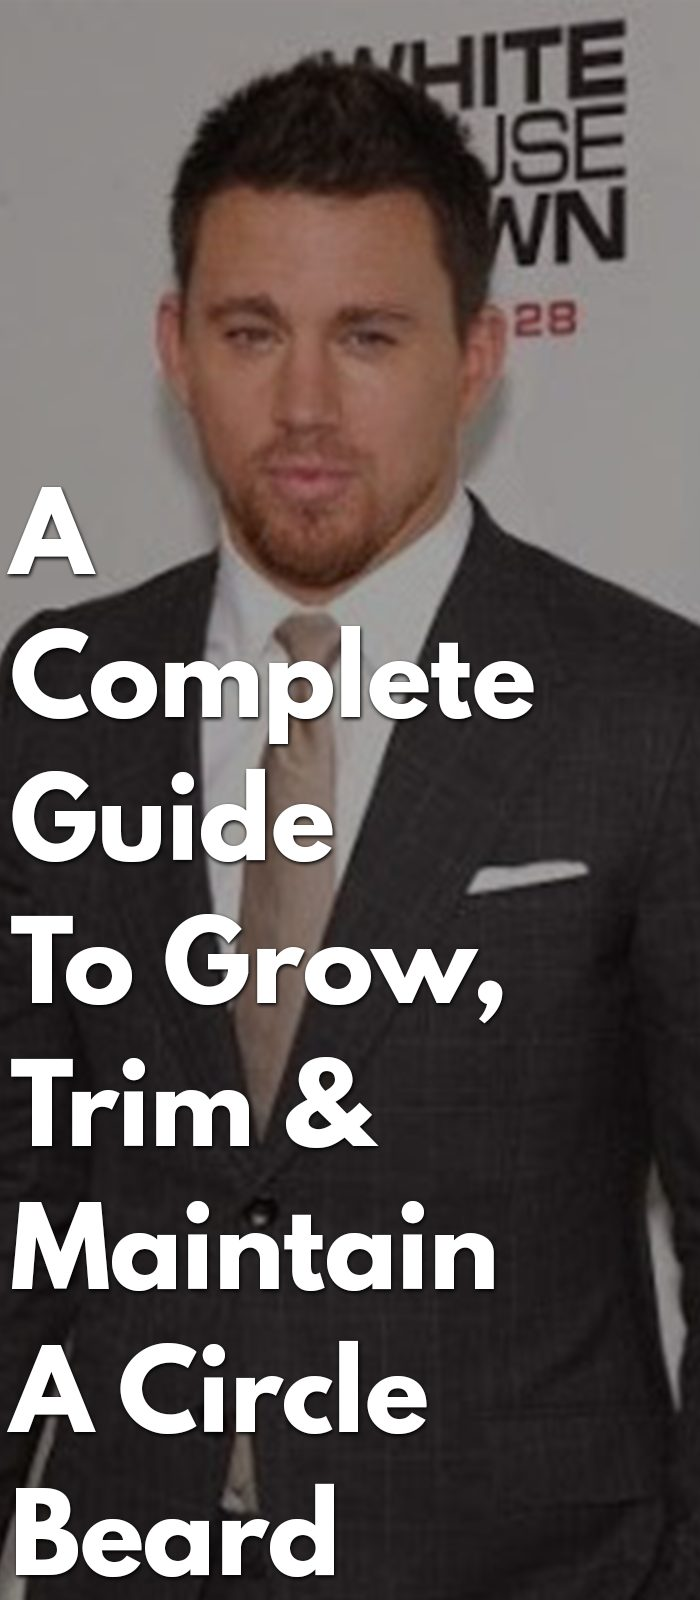 A-Complete-Guide-To-Grow,-Trim-&-Maintain-A-Circle-Beard